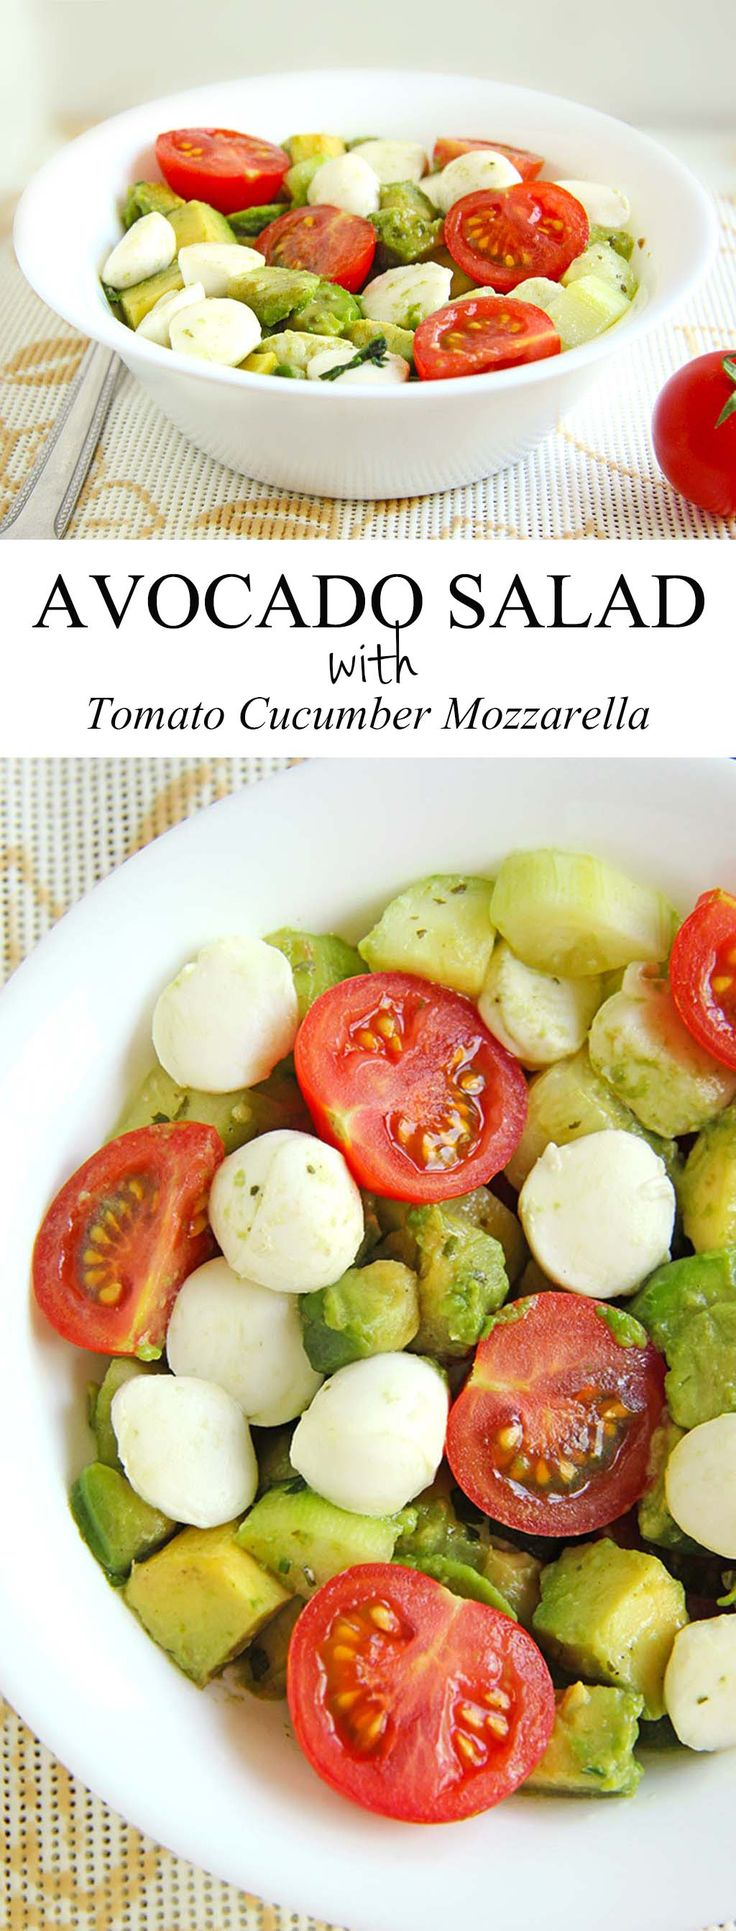 Avocado salad w/ tomato, cucumber + mozzarella.